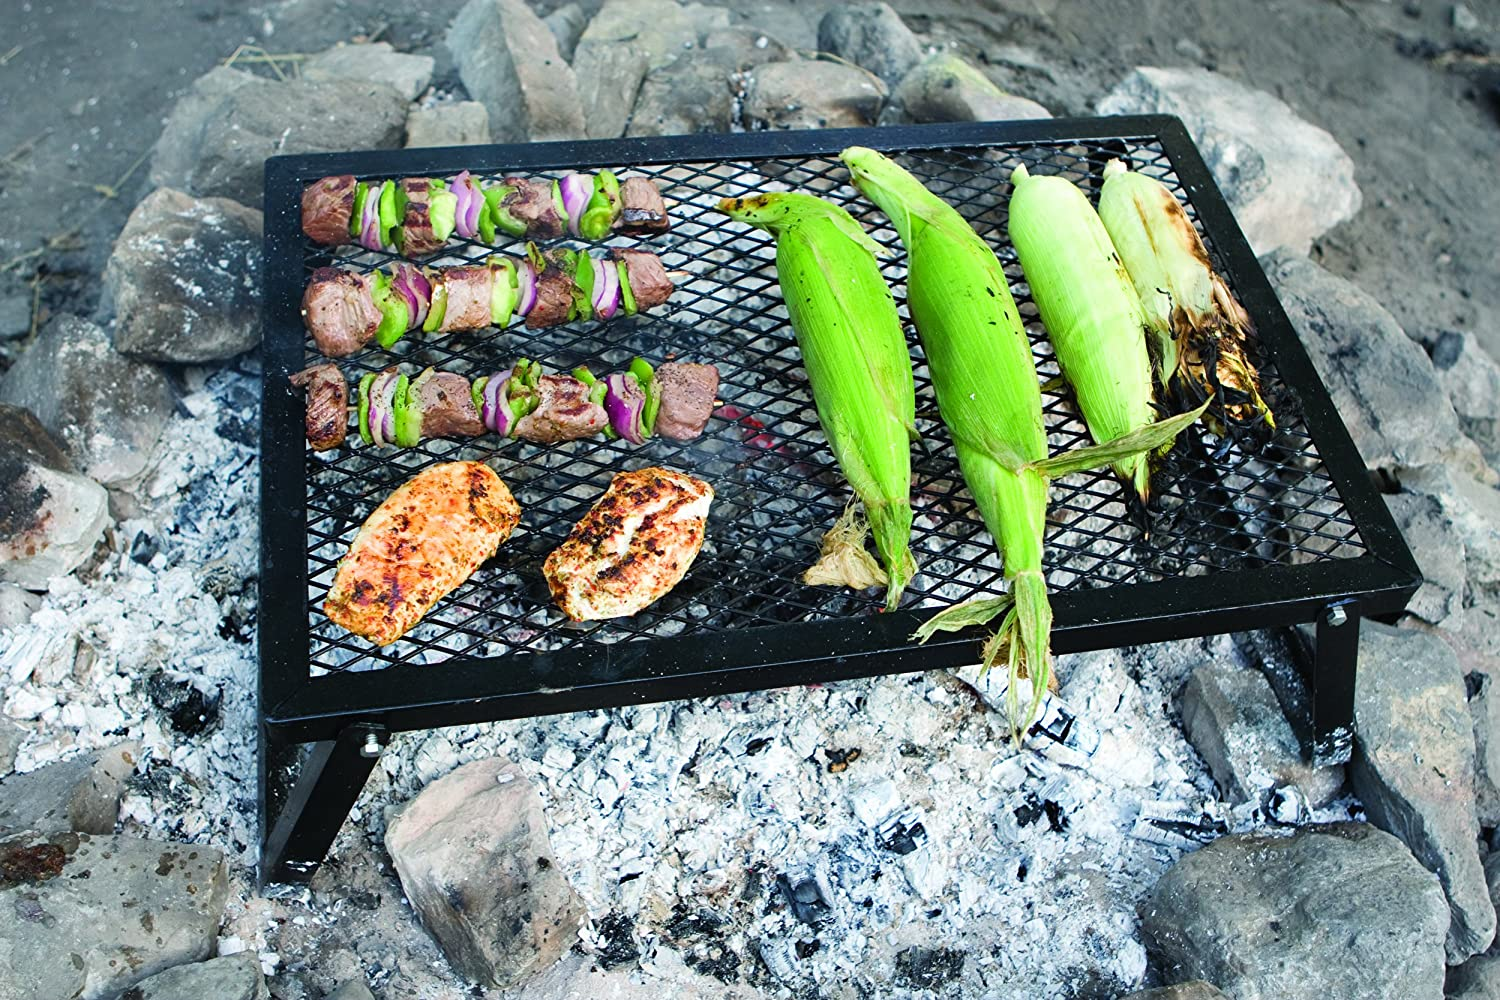 Campfire Cooking Equipment: Over-Fire Grills, Rotisserie Spits and Stands - Camp Chef Lumberjack Over-the-Fire Grill with Sturdy Legs